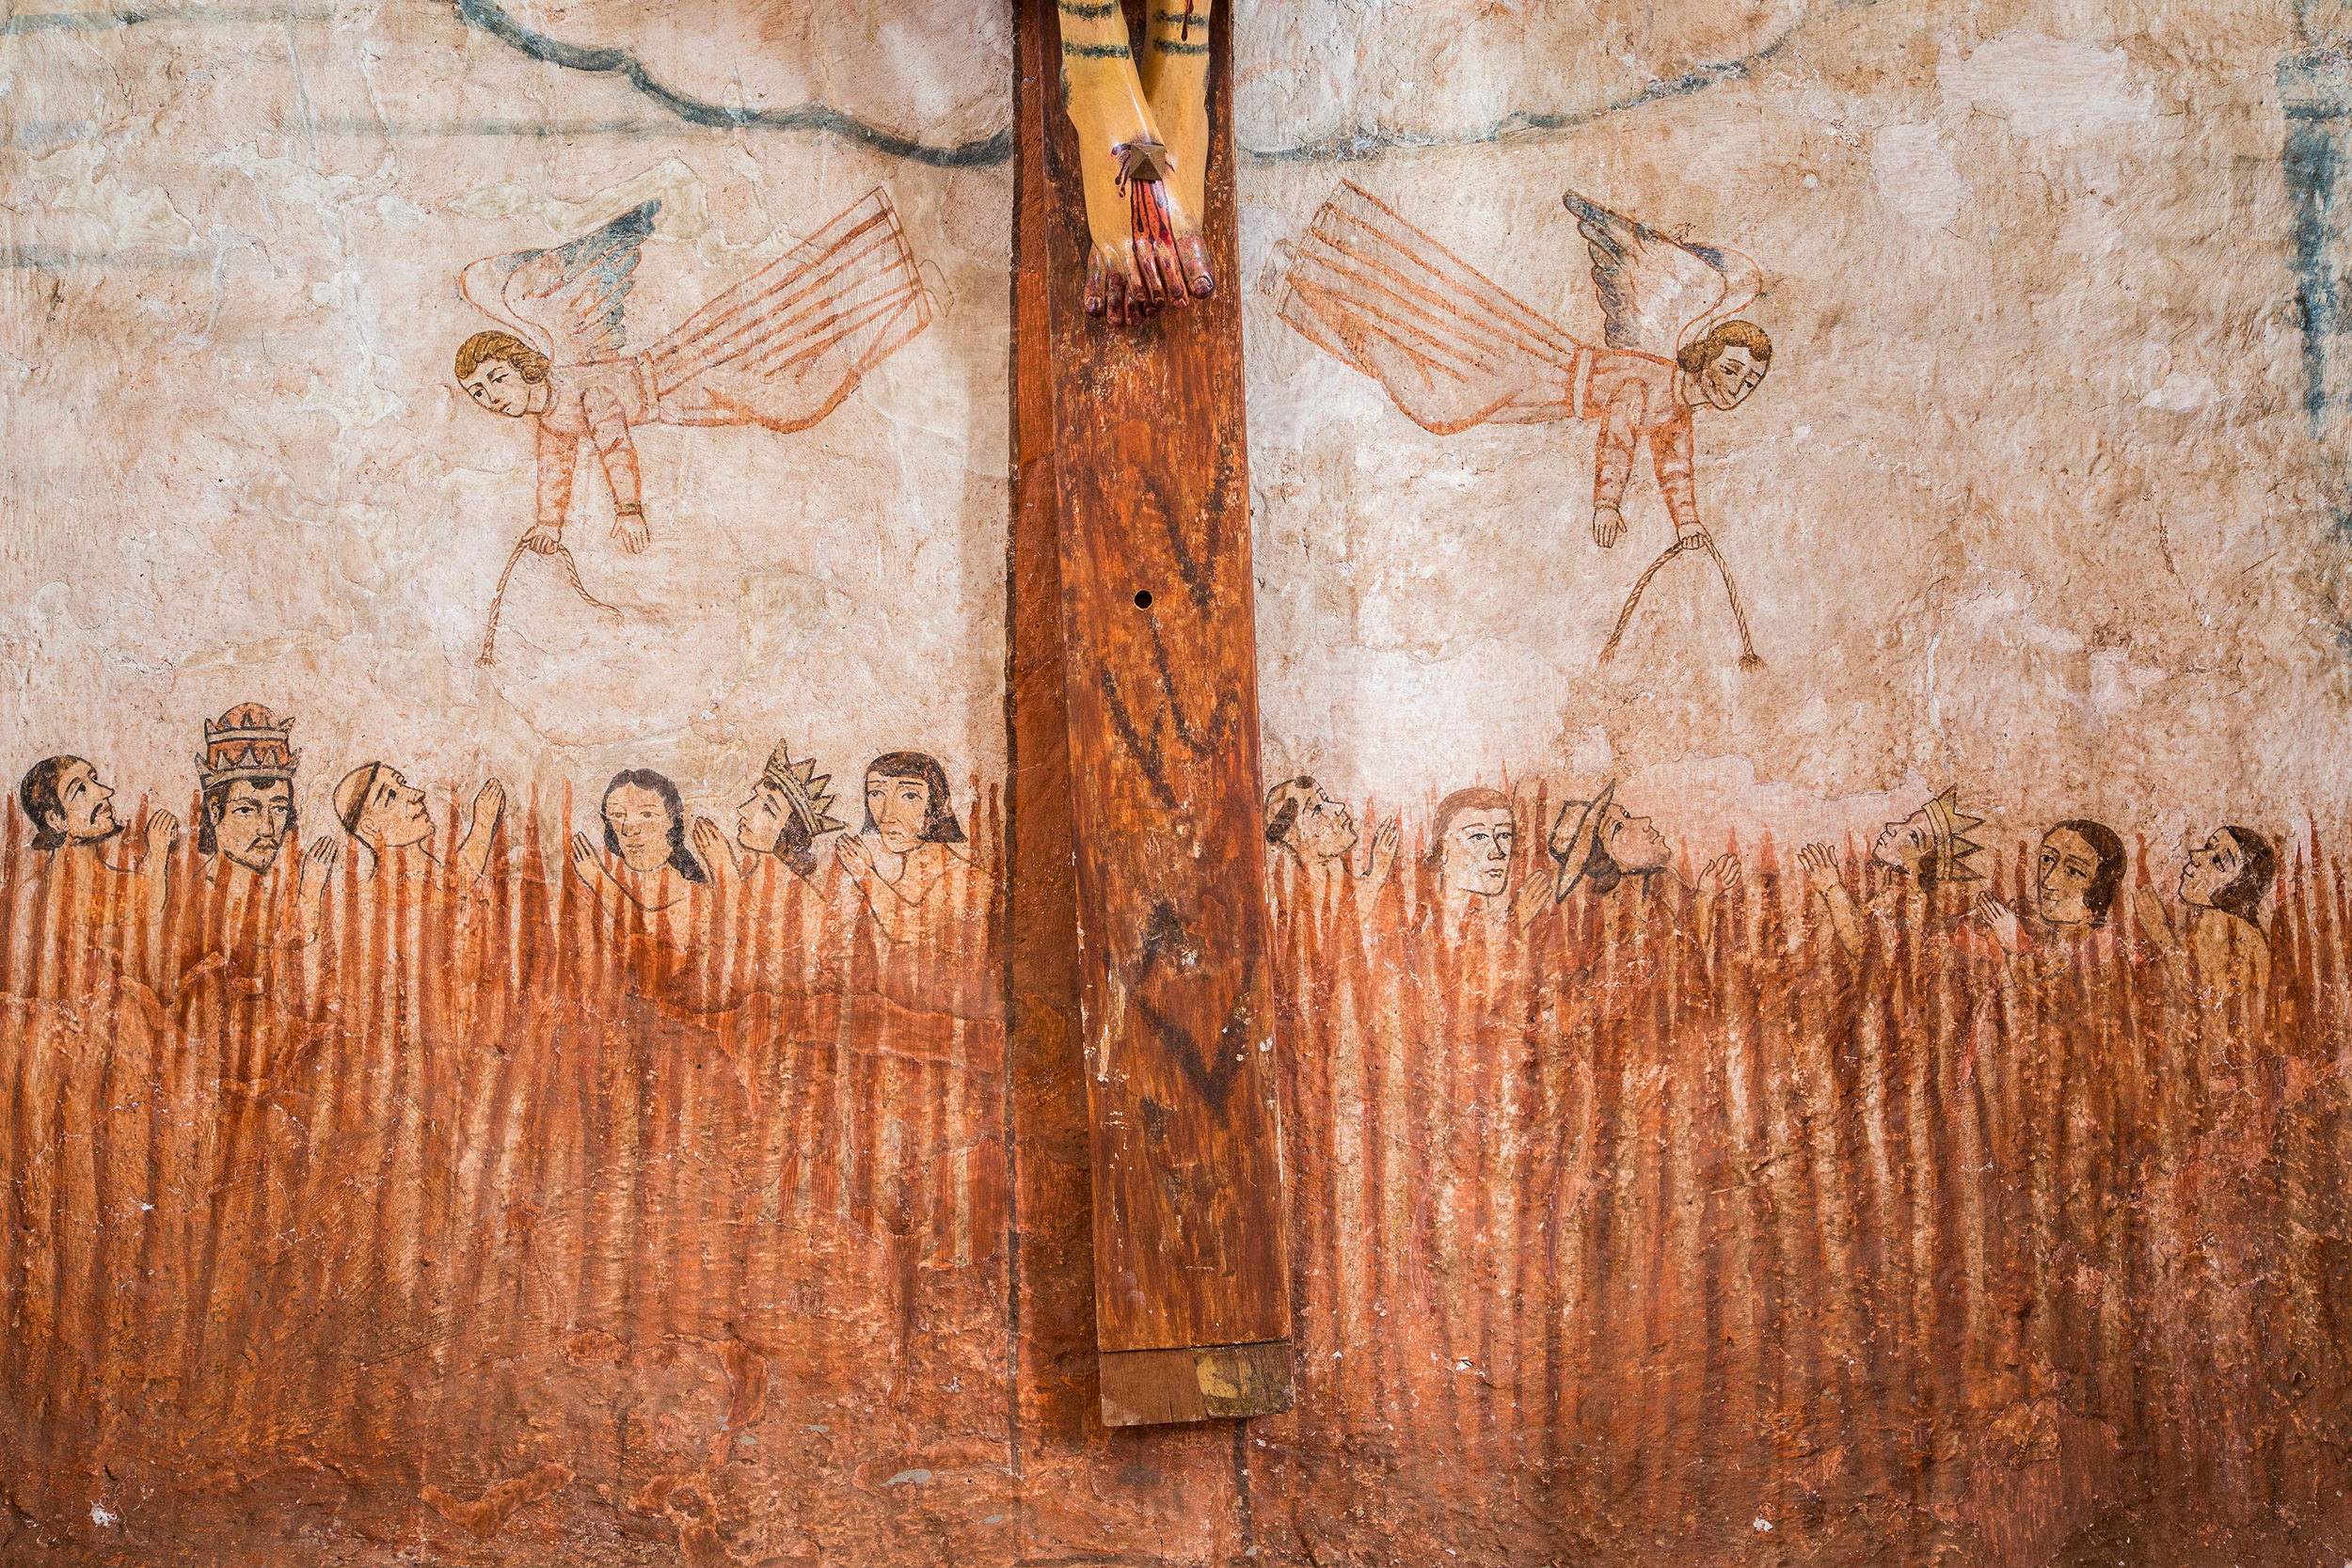 Fig. 32 Detail, painted niche with crucifix, late 18th or early 19th century. Church of Sangarará, Acomayo Province. Photo by Raúl Montero Quispe. Note the similarities in the depiction of indigenous Andeans with the examples from Huarocondo and Oropesa.